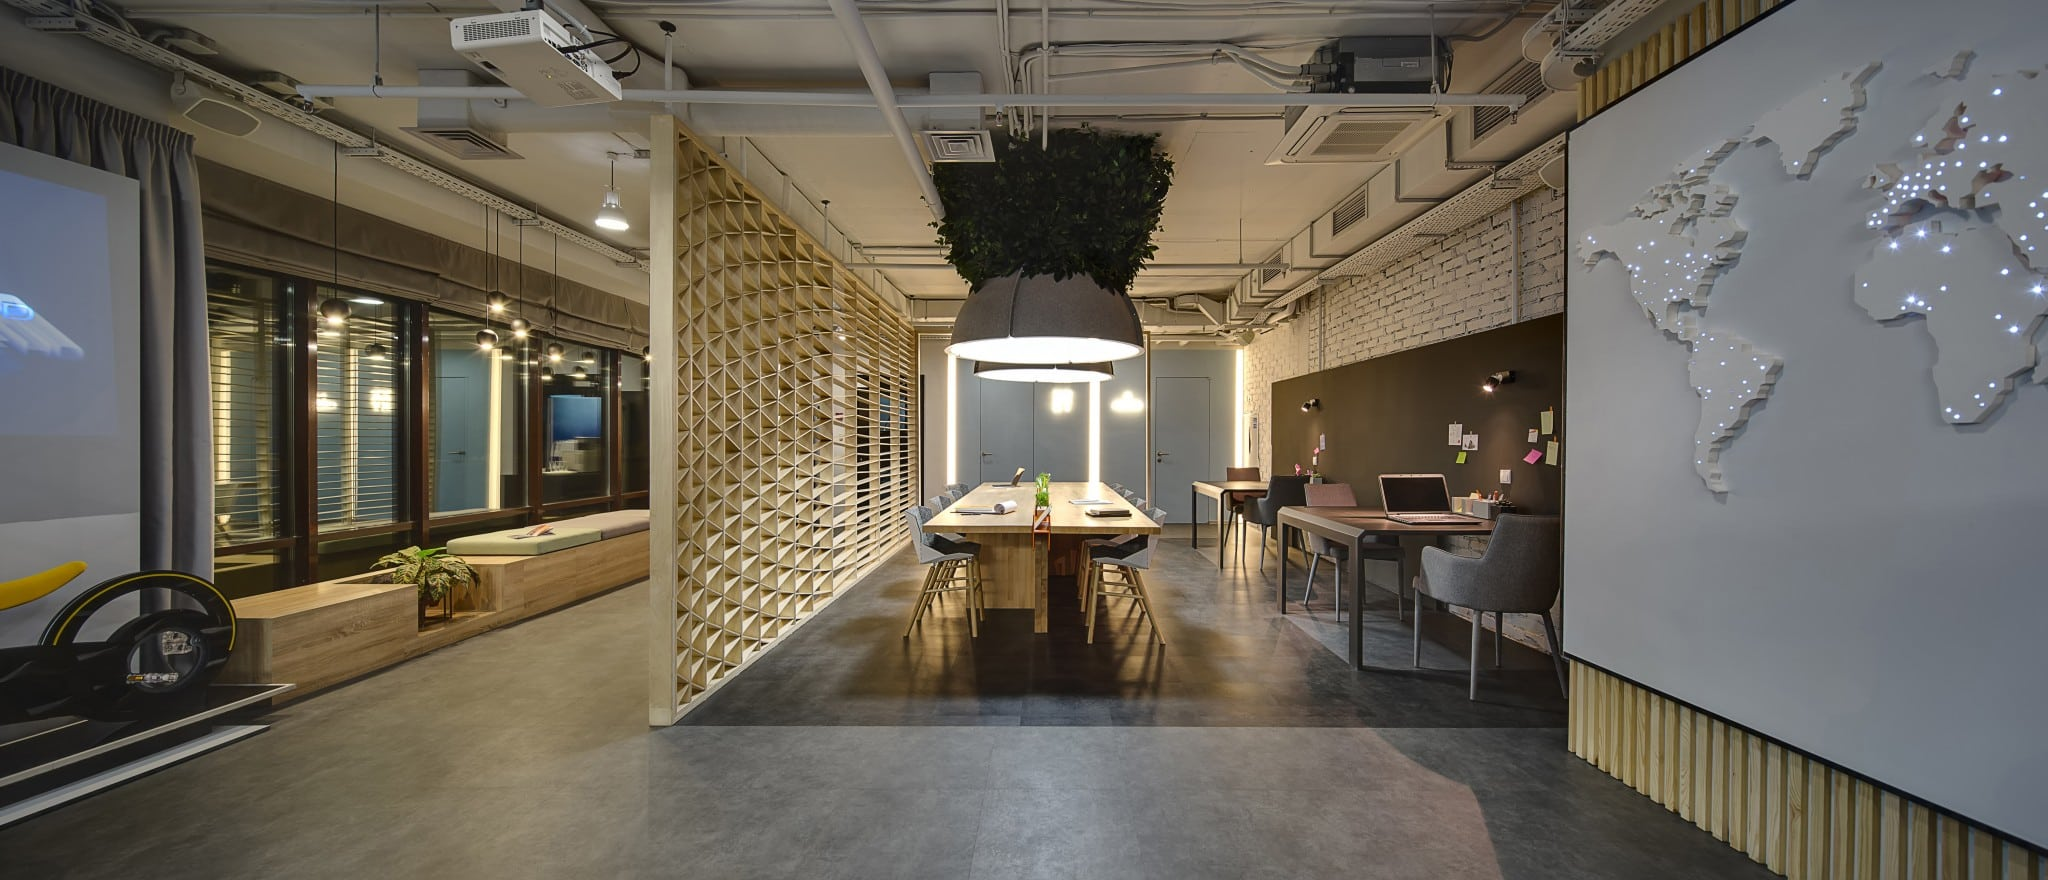 coworking space oslo